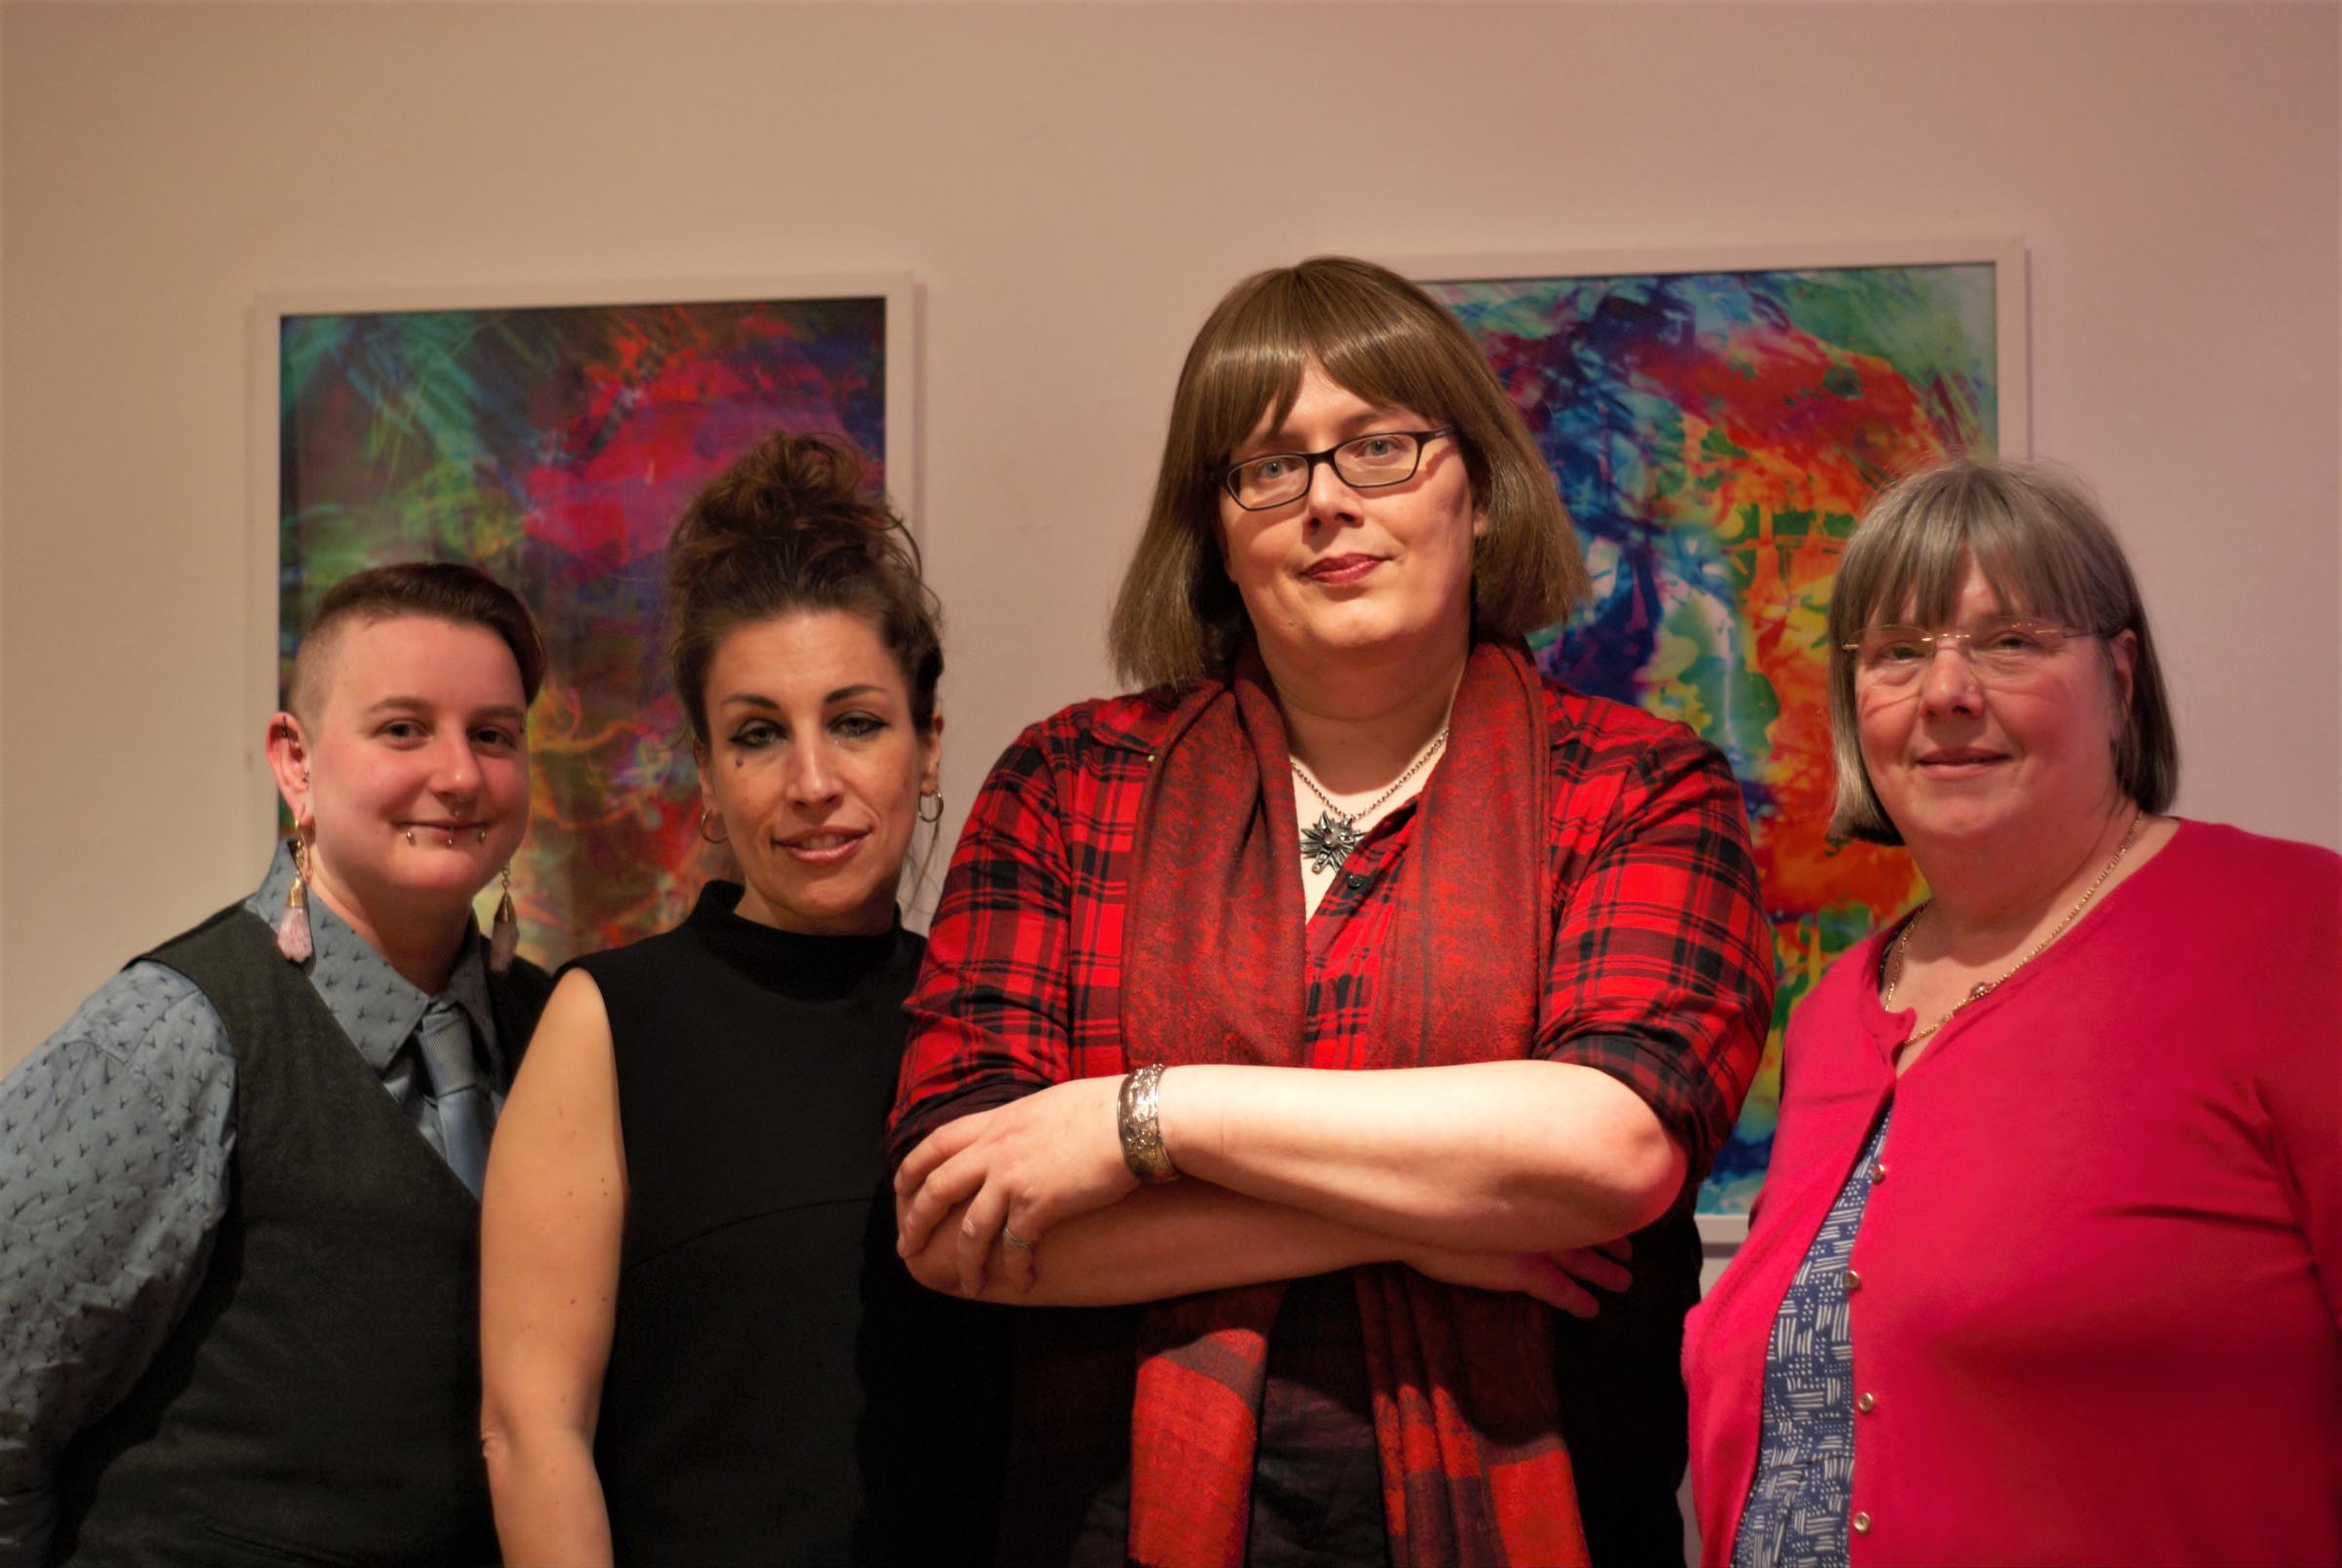 LAUNCH: Samantha-Jane Eagle, Hannah Phillips, Rachel Troth and Councillor Lucy Hodgson at the launch event